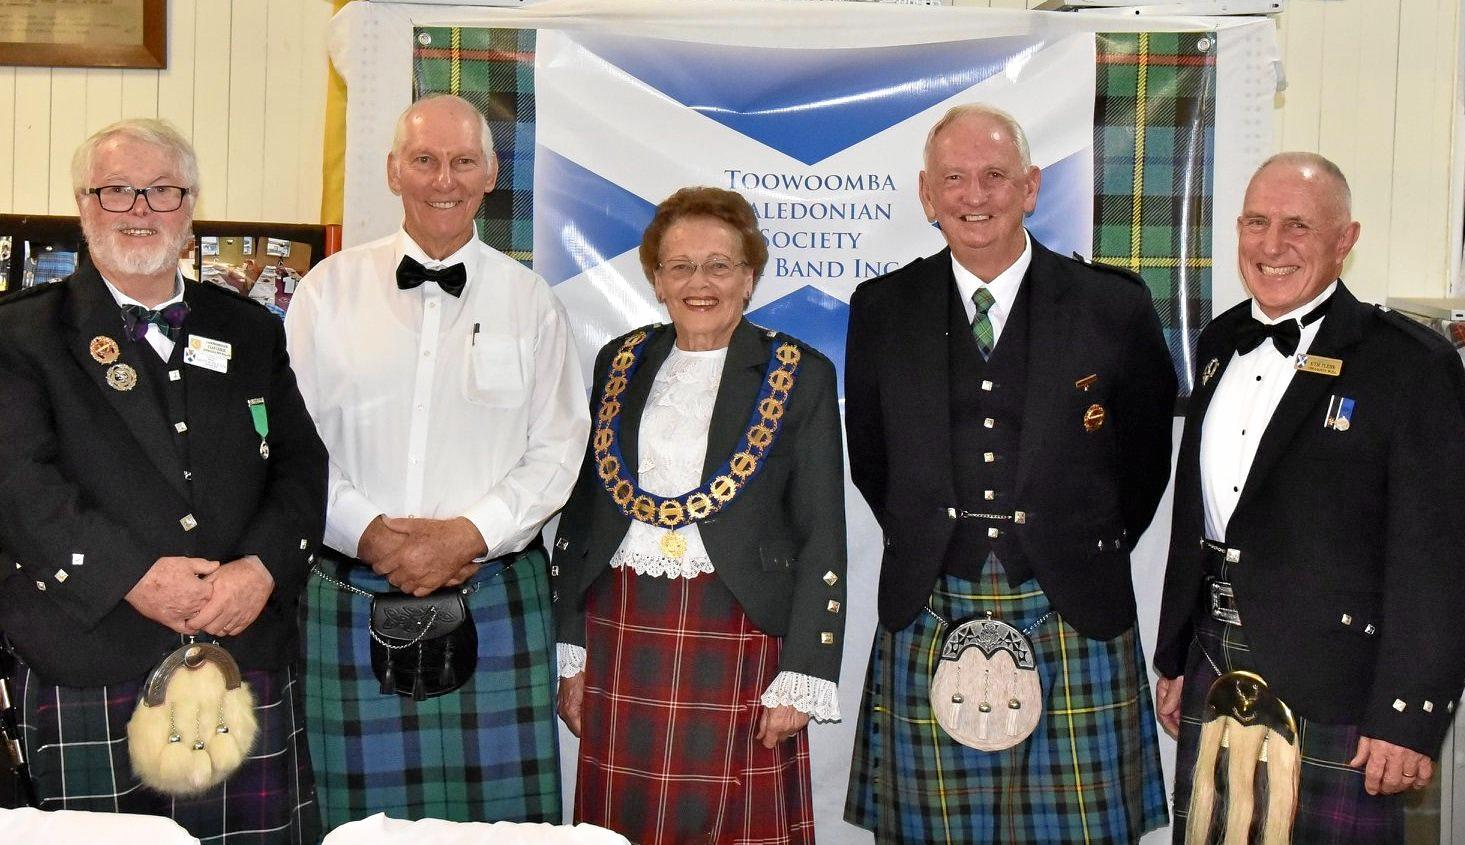 KEEPING UP TRADITIONS: Past chieftain Mal Lesley, president Col McKay, first female chieftain Irene Batzloff, patron Carl Hinds and past chieftan Kym Flehr at the recent Toowoomba Caledonian Society and Pipe Band's Burns Supper, celebrating poet Robert Burns.